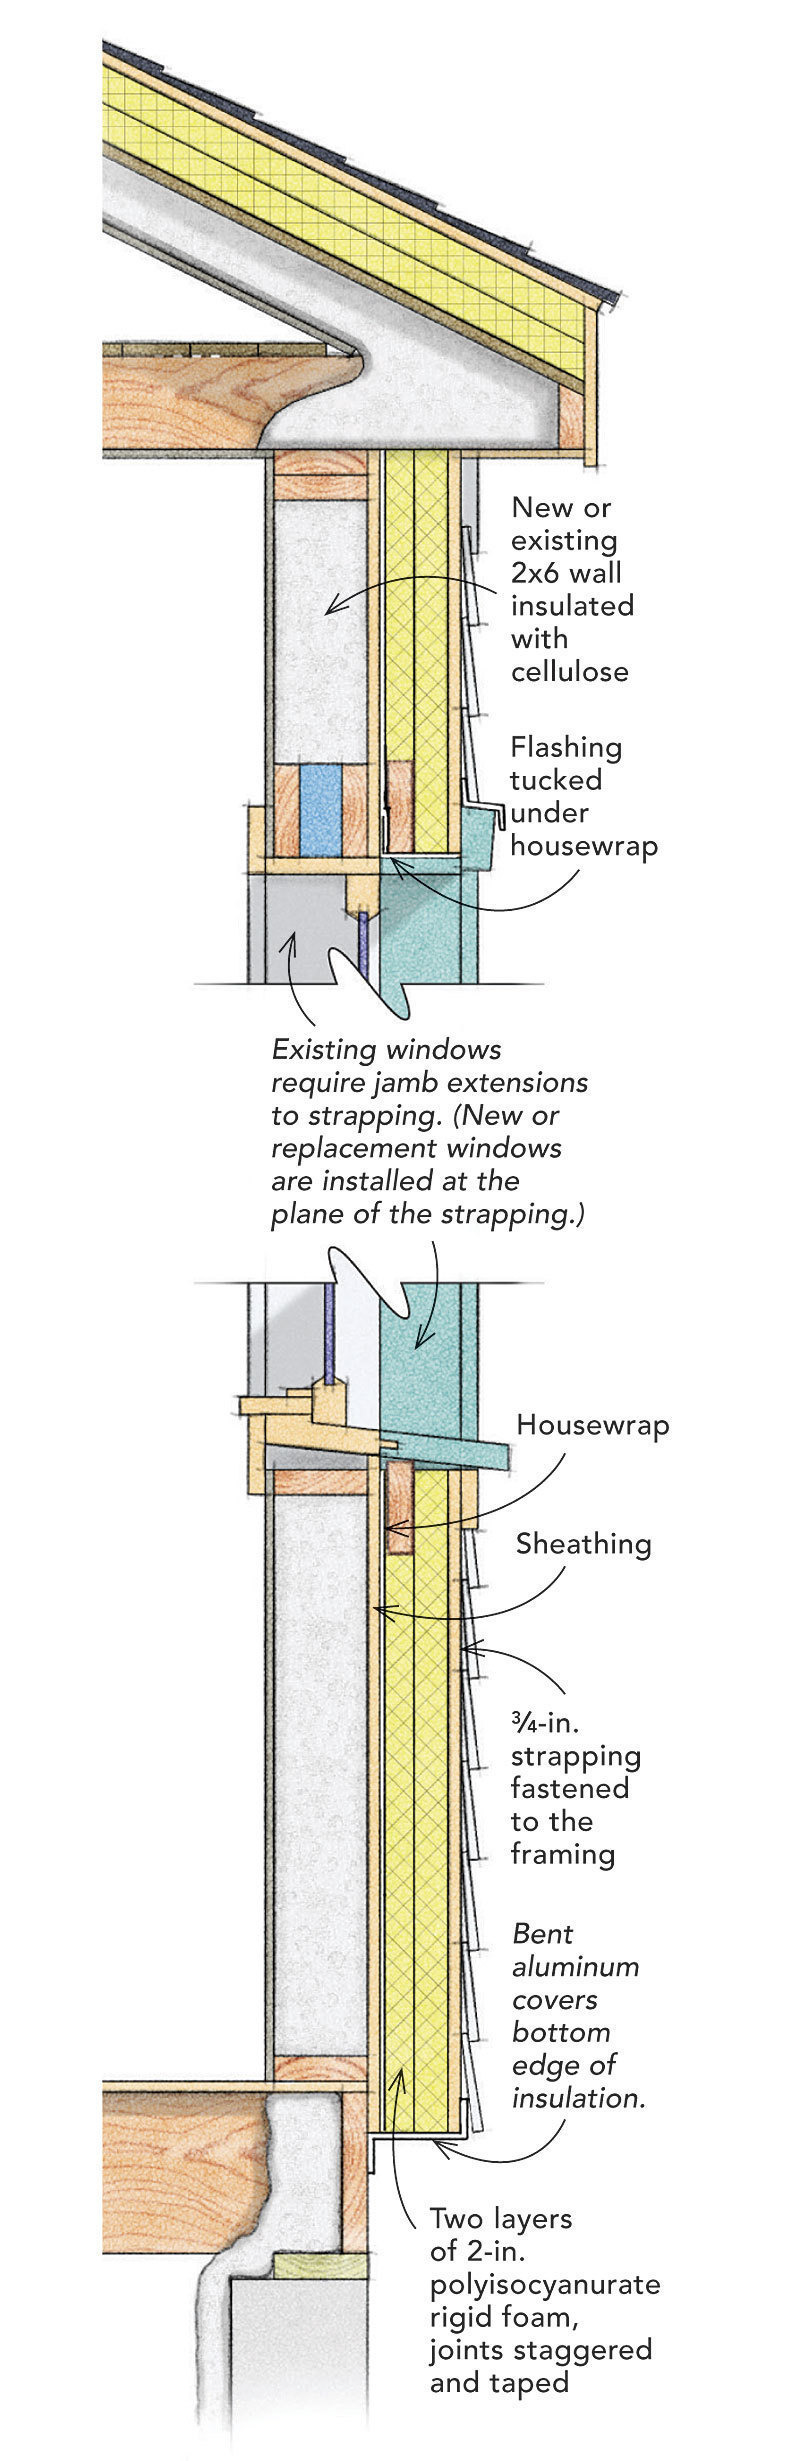 Structural Insulated Panels House Plans Best Of Six Proven Ways to Build Energy Smart Walls Fine Homebuilding